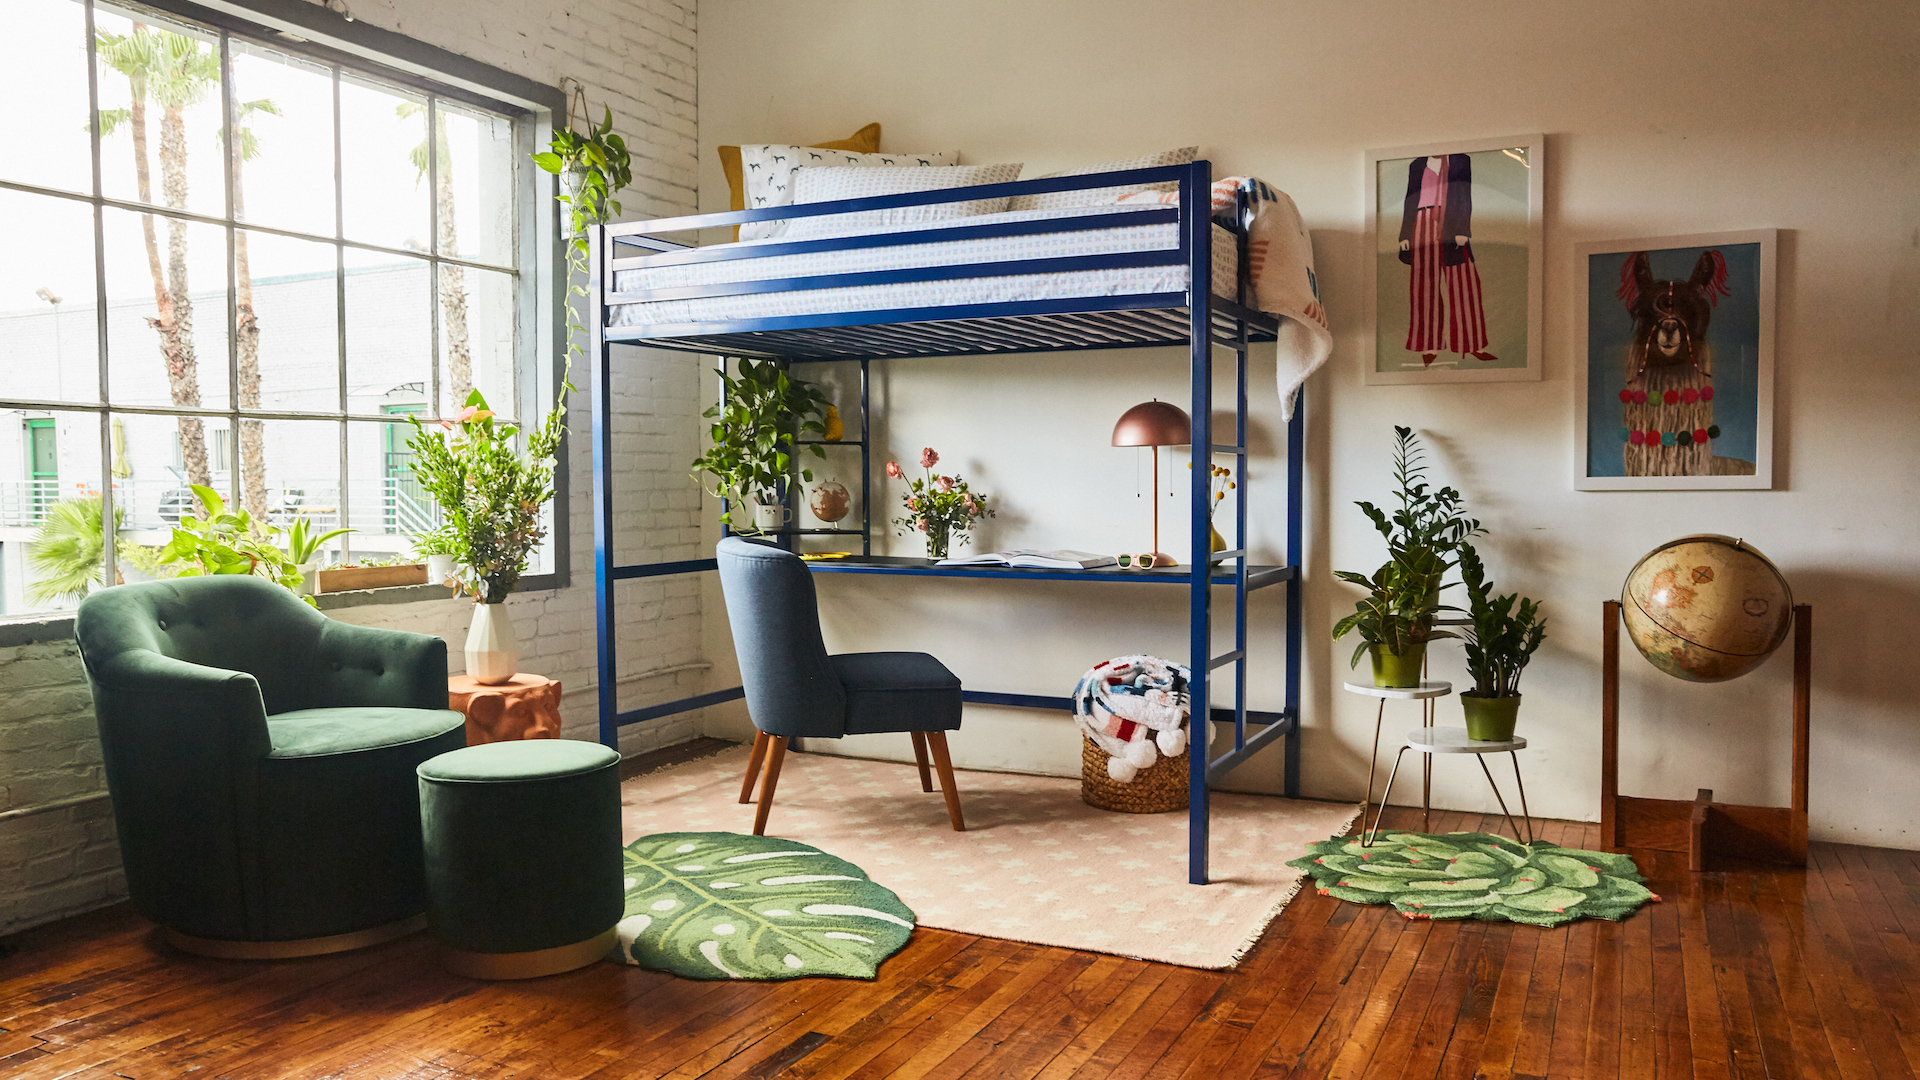 These Chic New Room Sets on Amazon Will Make You Forget You're Living In a Tiny Apartment